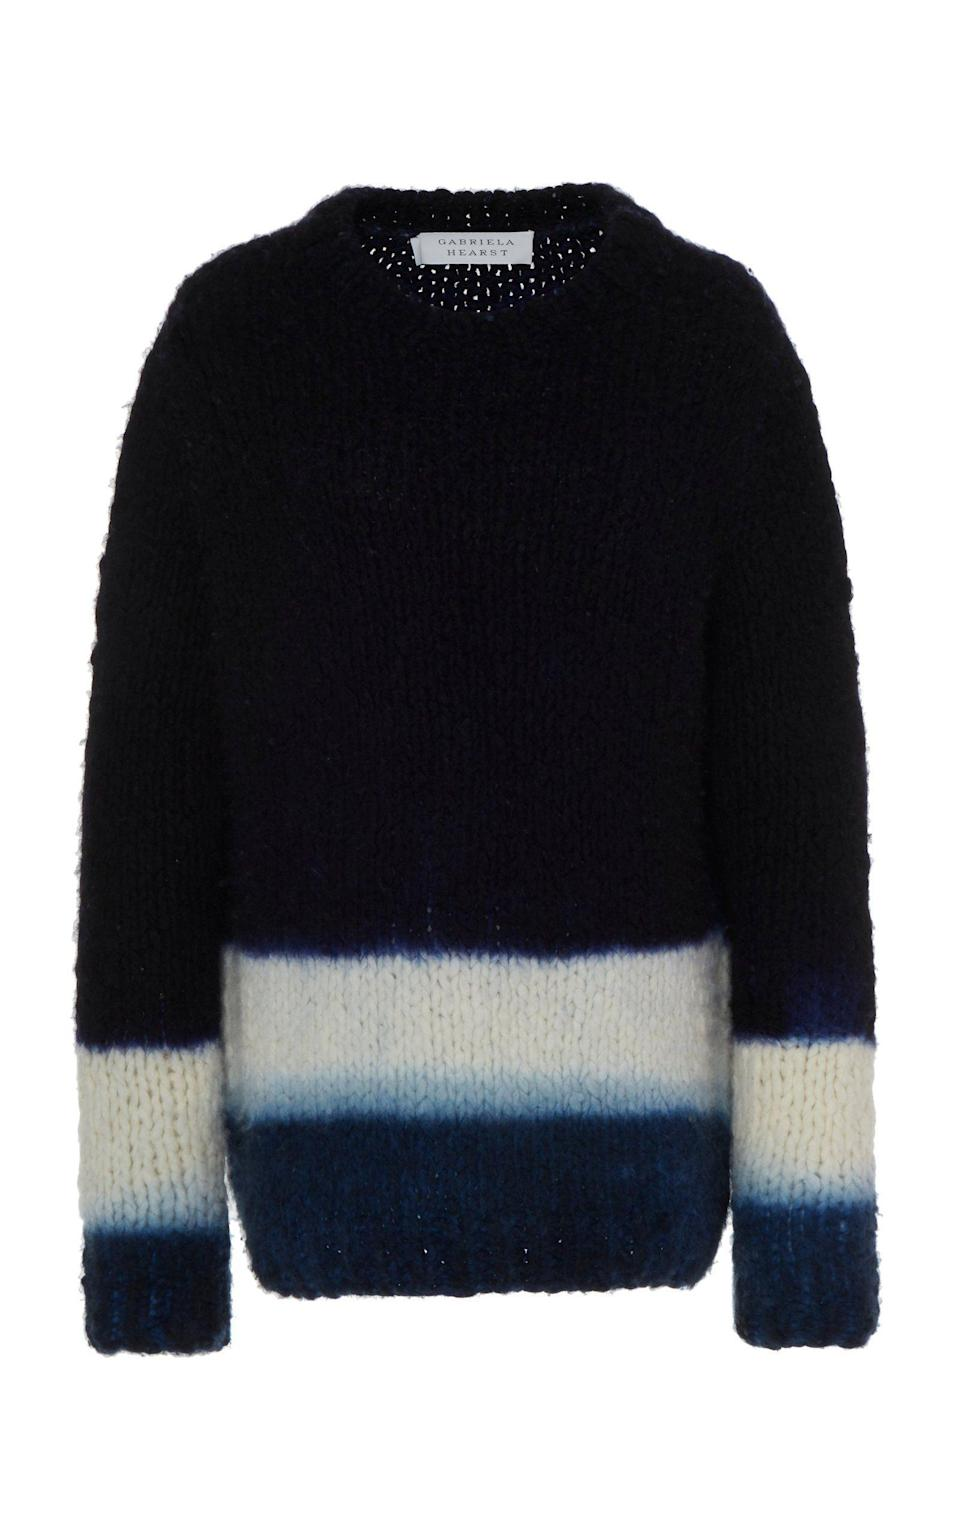 """<p><strong>Gabriela Hearst</strong></p><p>gabrielahearst.com</p><p><strong>$1990.00</strong></p><p><a href=""""https://www.gabrielahearst.com/products/lawrence-dip-dye-sweater-navy-ivory-sapphire?variant=29490105188431"""" rel=""""nofollow noopener"""" target=""""_blank"""" data-ylk=""""slk:Shop Now"""" class=""""link rapid-noclick-resp"""">Shop Now</a></p><p>The Lawrence Dip Dye Sweater in cashmere was made by Manos del Uruguay, a nonprofit that empowers women in Uruguay. As a Latin woman living in New York for the past 20 years, it has informed the perspective that I possess as a creative of these worlds—my native culture and adopted one. My children are born from a first-generation immigrant and proud of it.</p>"""